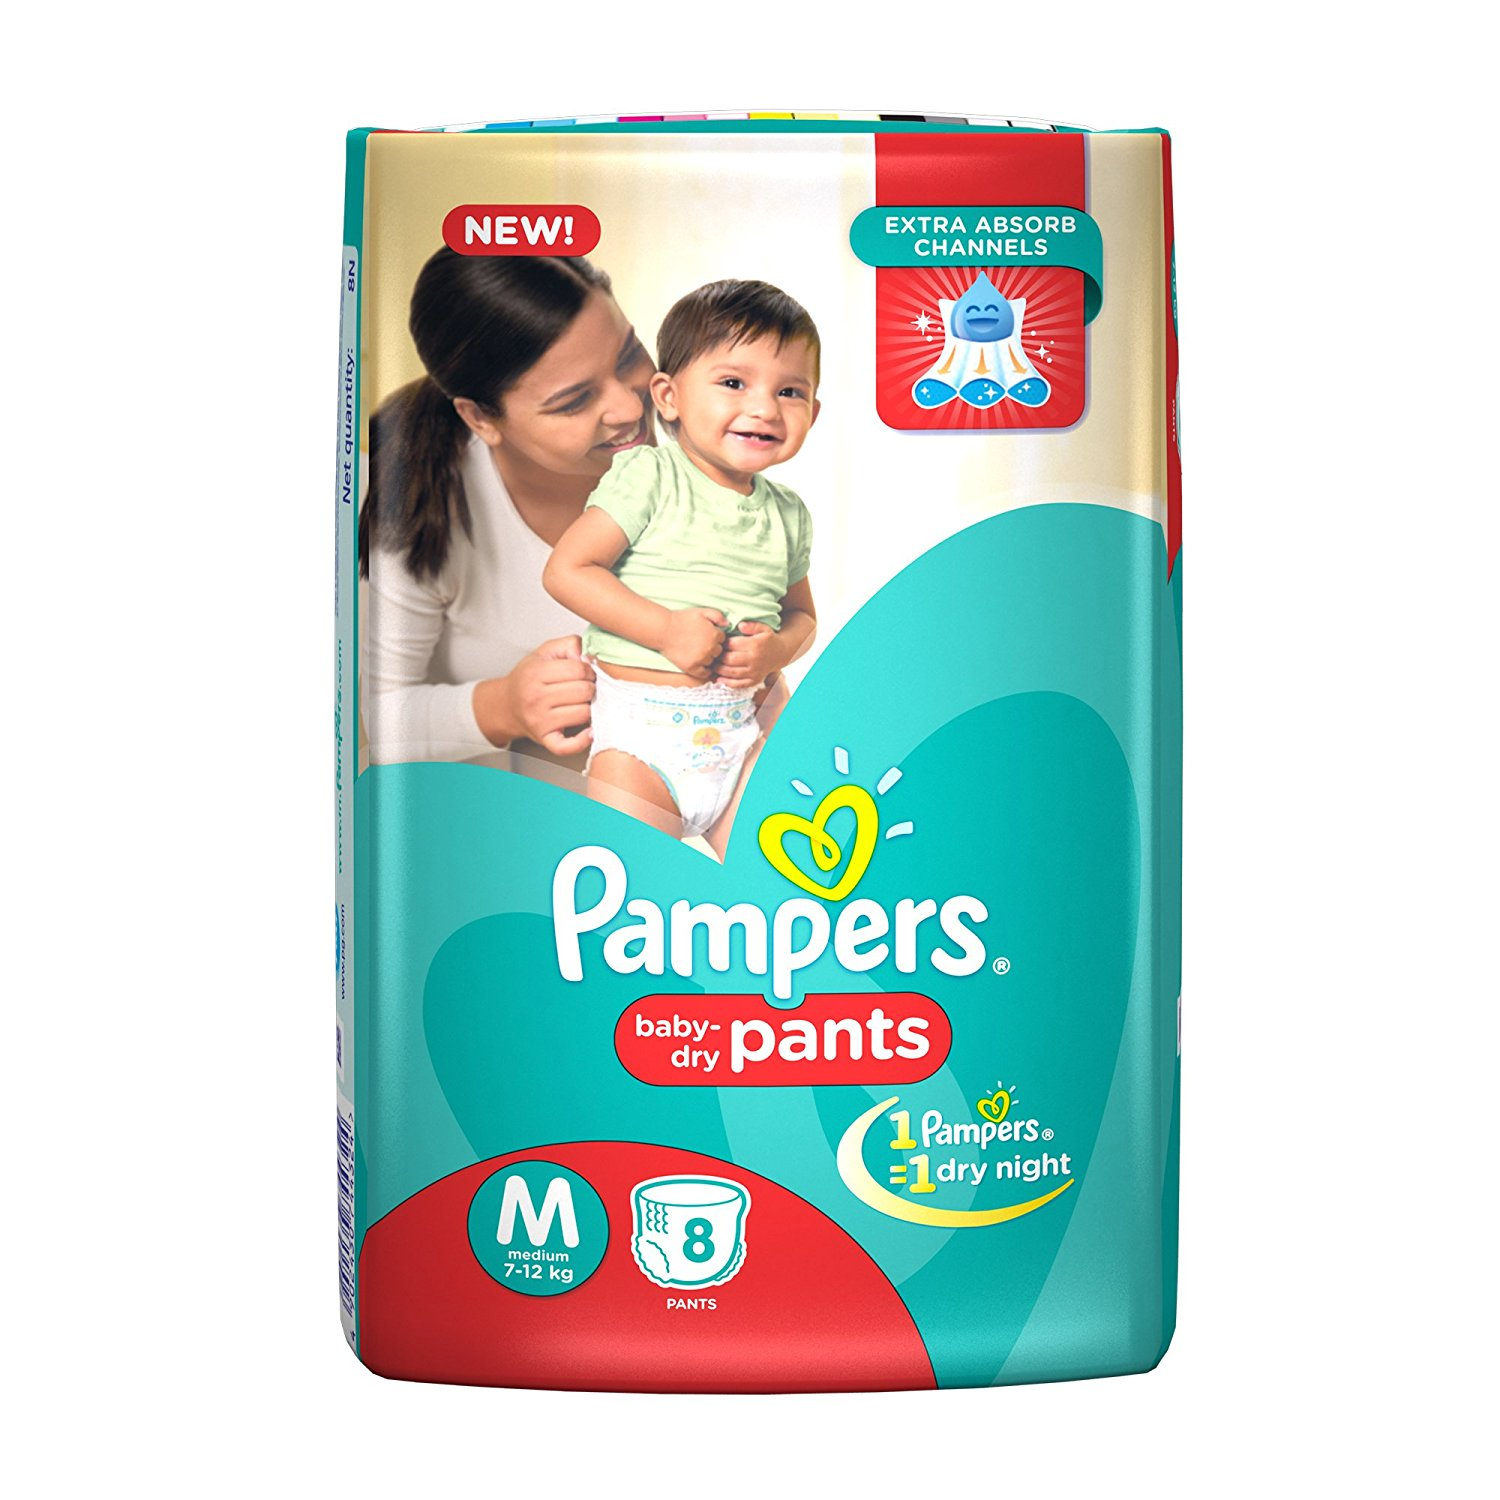 Pampers Medium Size Diapers (8 Count)